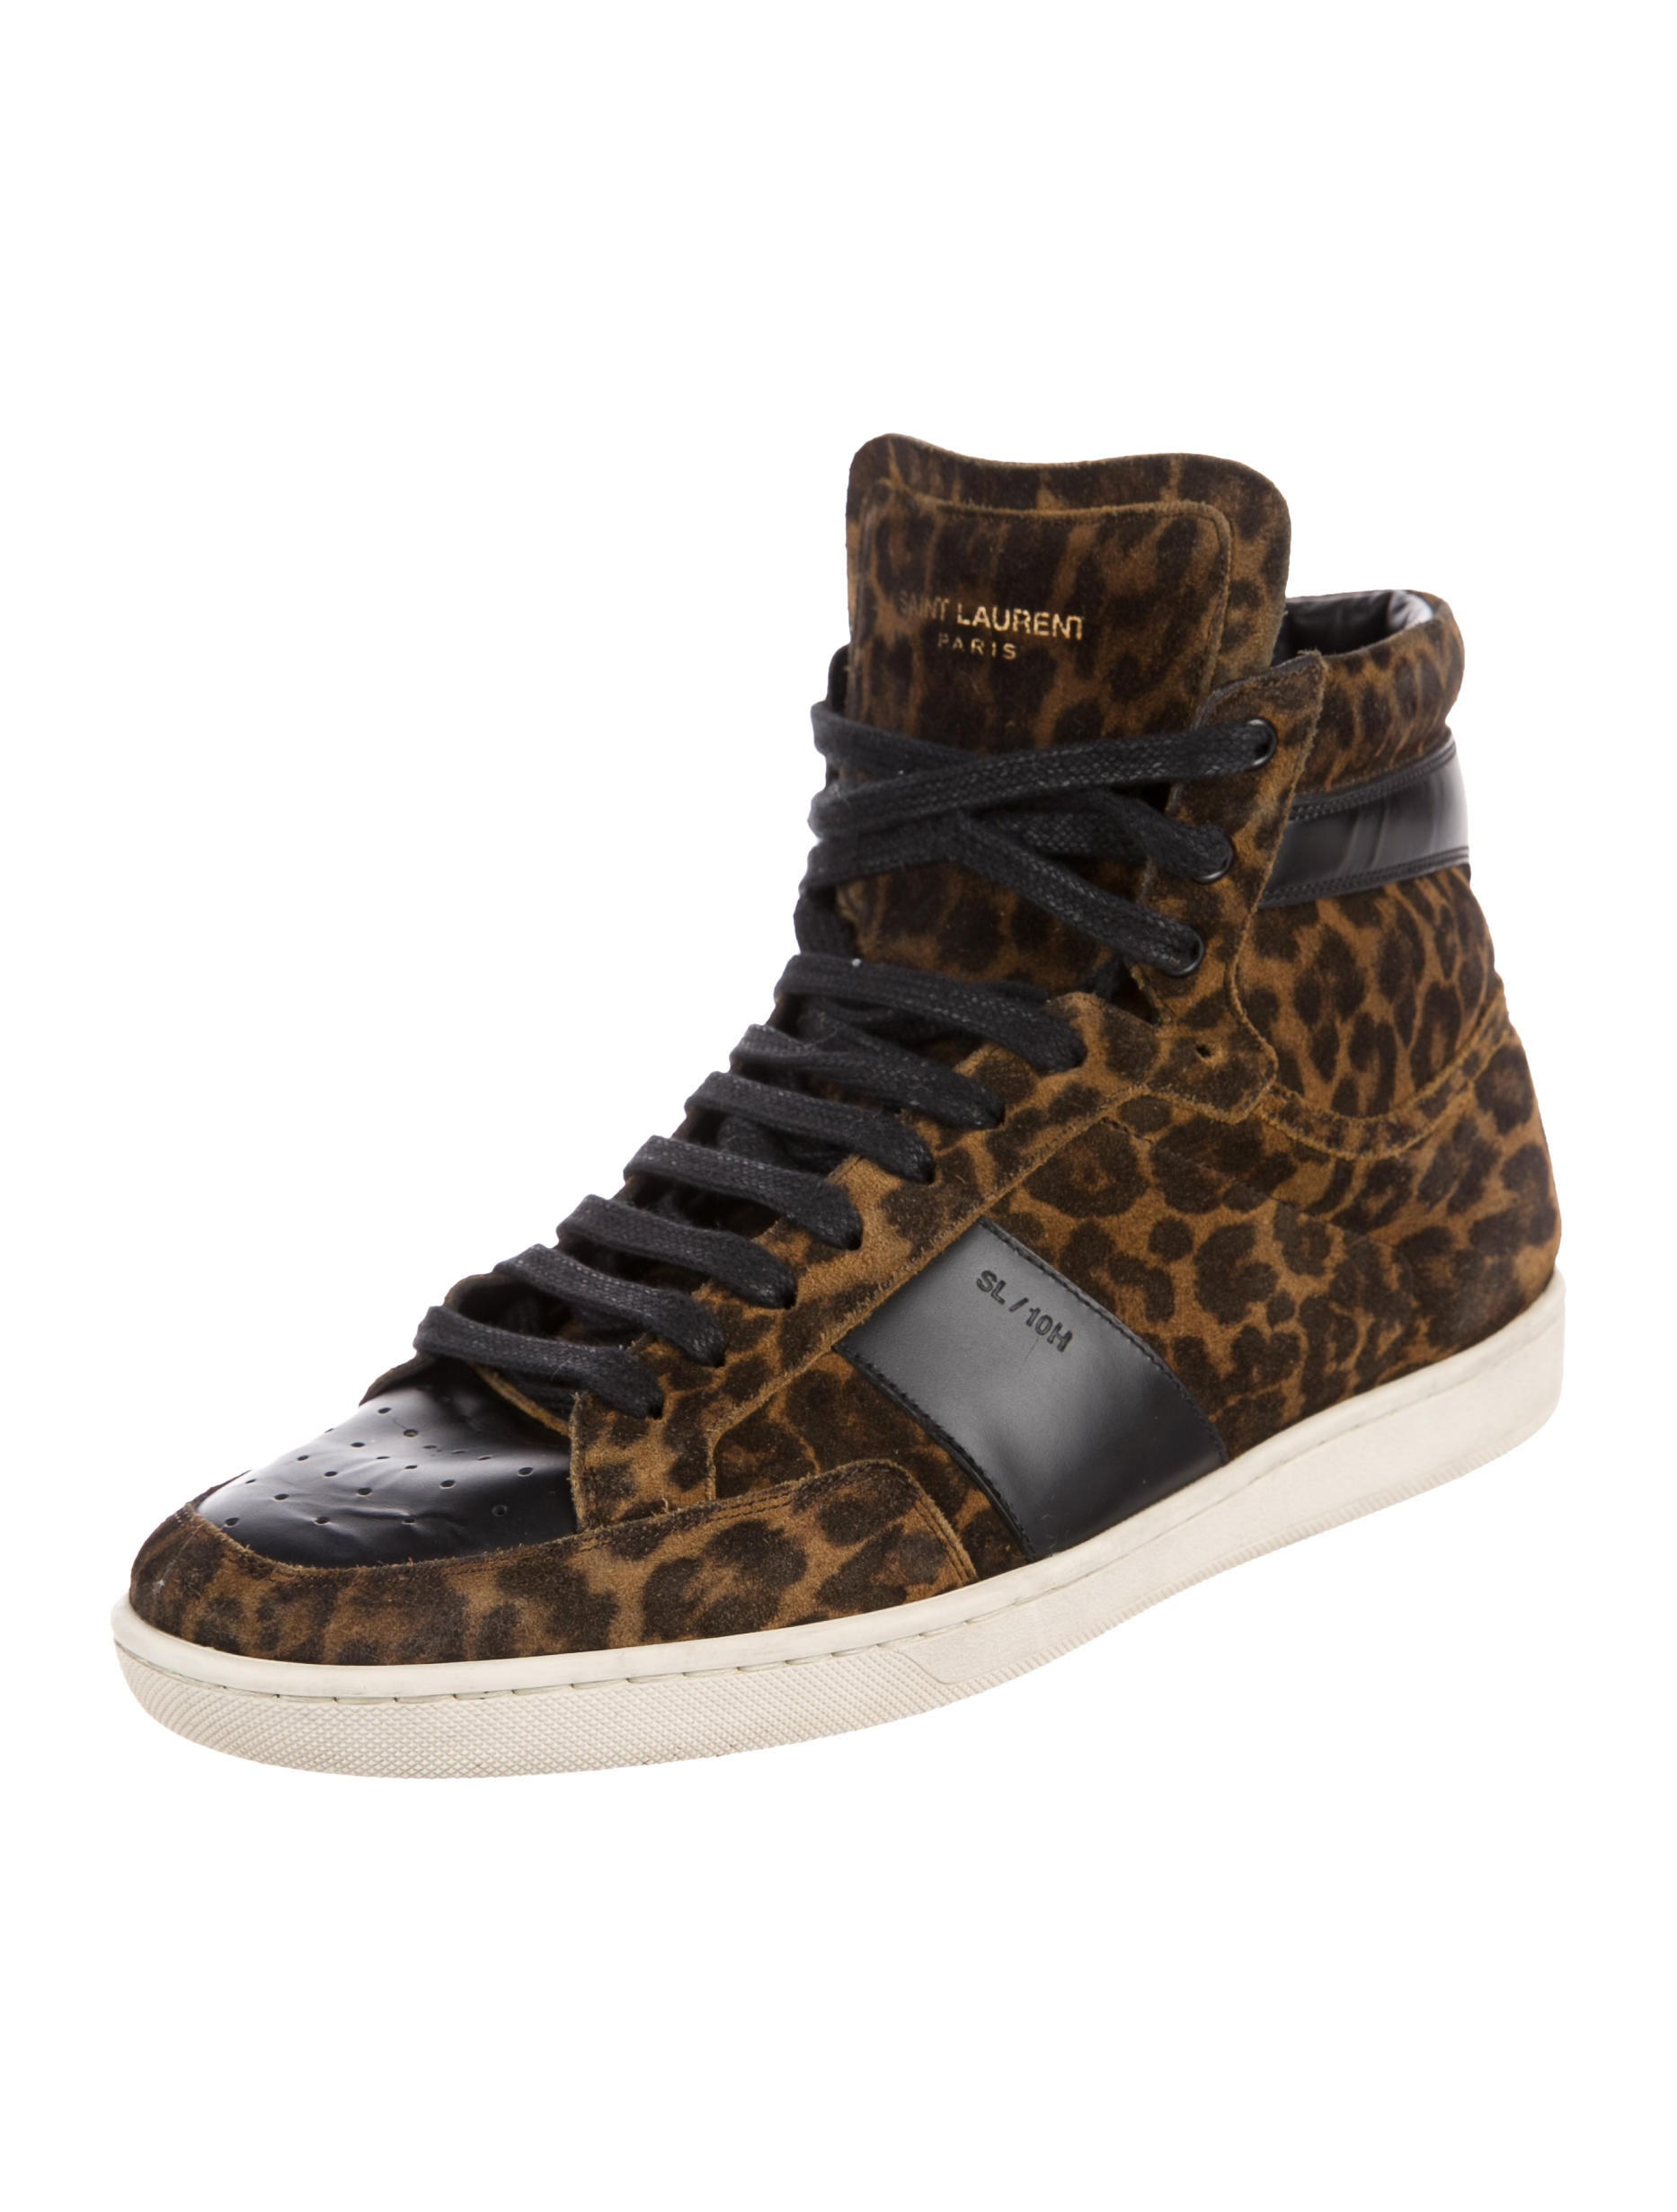 saint laurent sl 10 leopard print sneakers shoes snt36455 the realreal. Black Bedroom Furniture Sets. Home Design Ideas